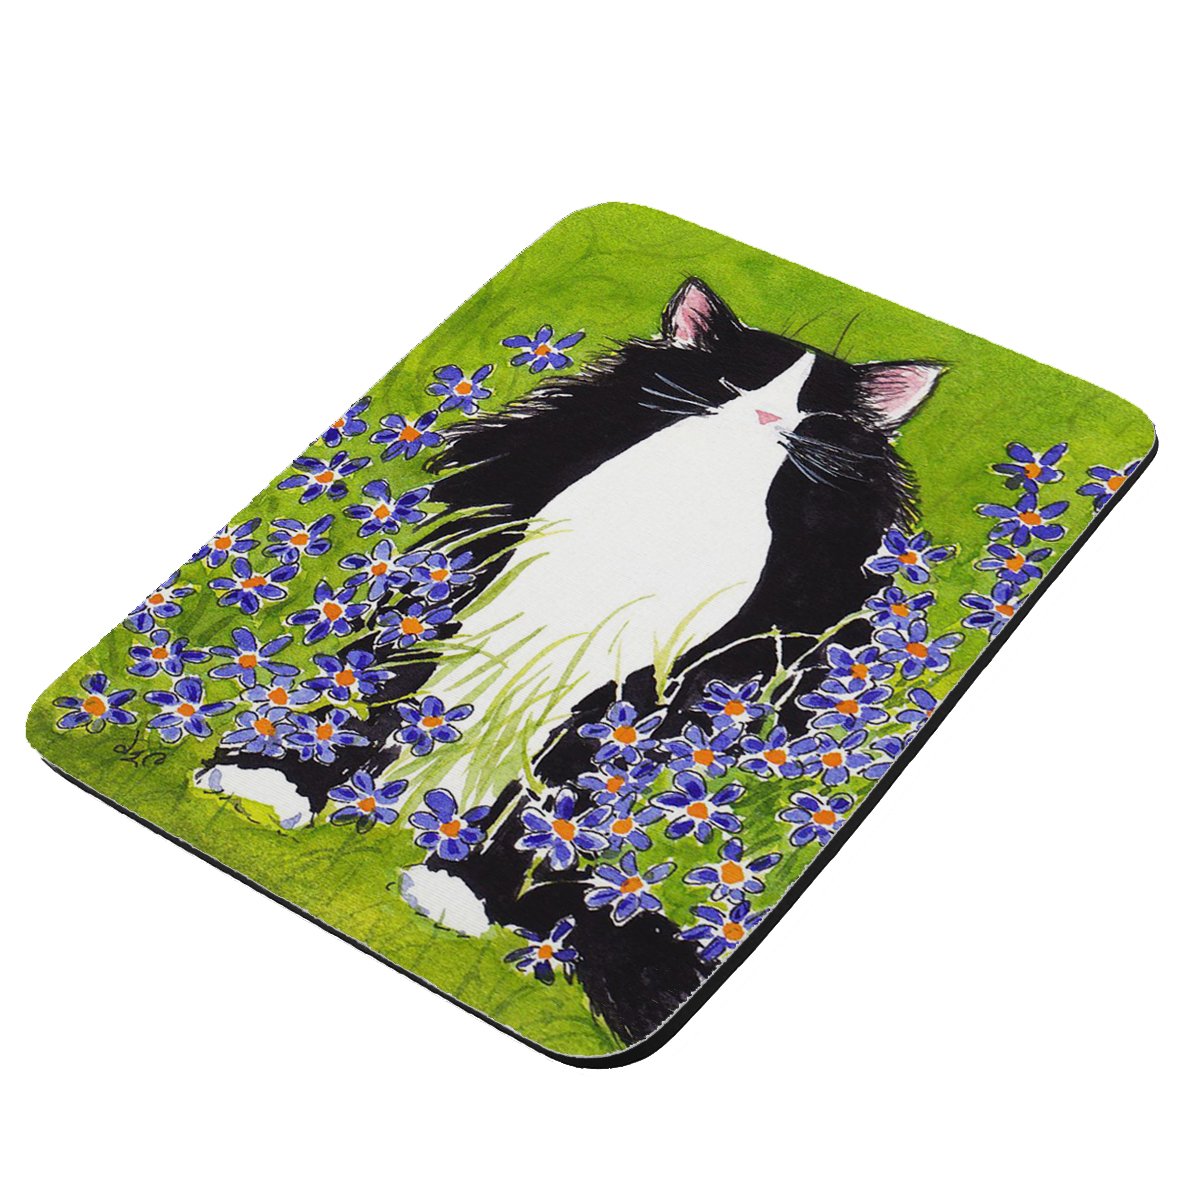 Tuxedo Maine Coon Cat with Blue-Eyed Grass Art by Denise Every - KuzmarK Mousepad / Hot Pad / Trivet